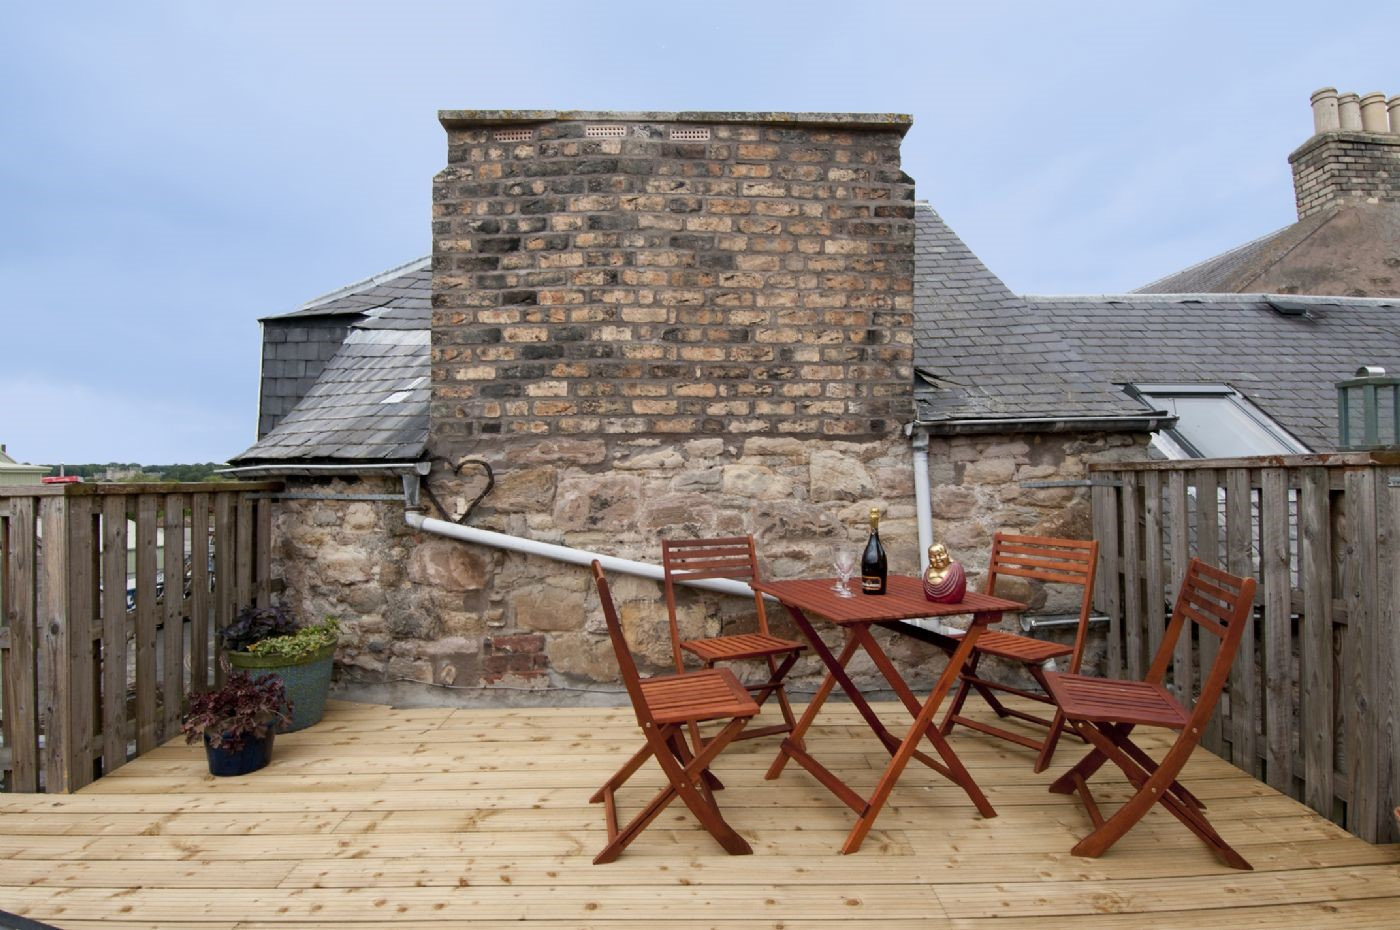 The small private roof terrace offers fantastic views over the rooftops of Kelso to the Tweed, Springwood Park and Floors Castle beyond.